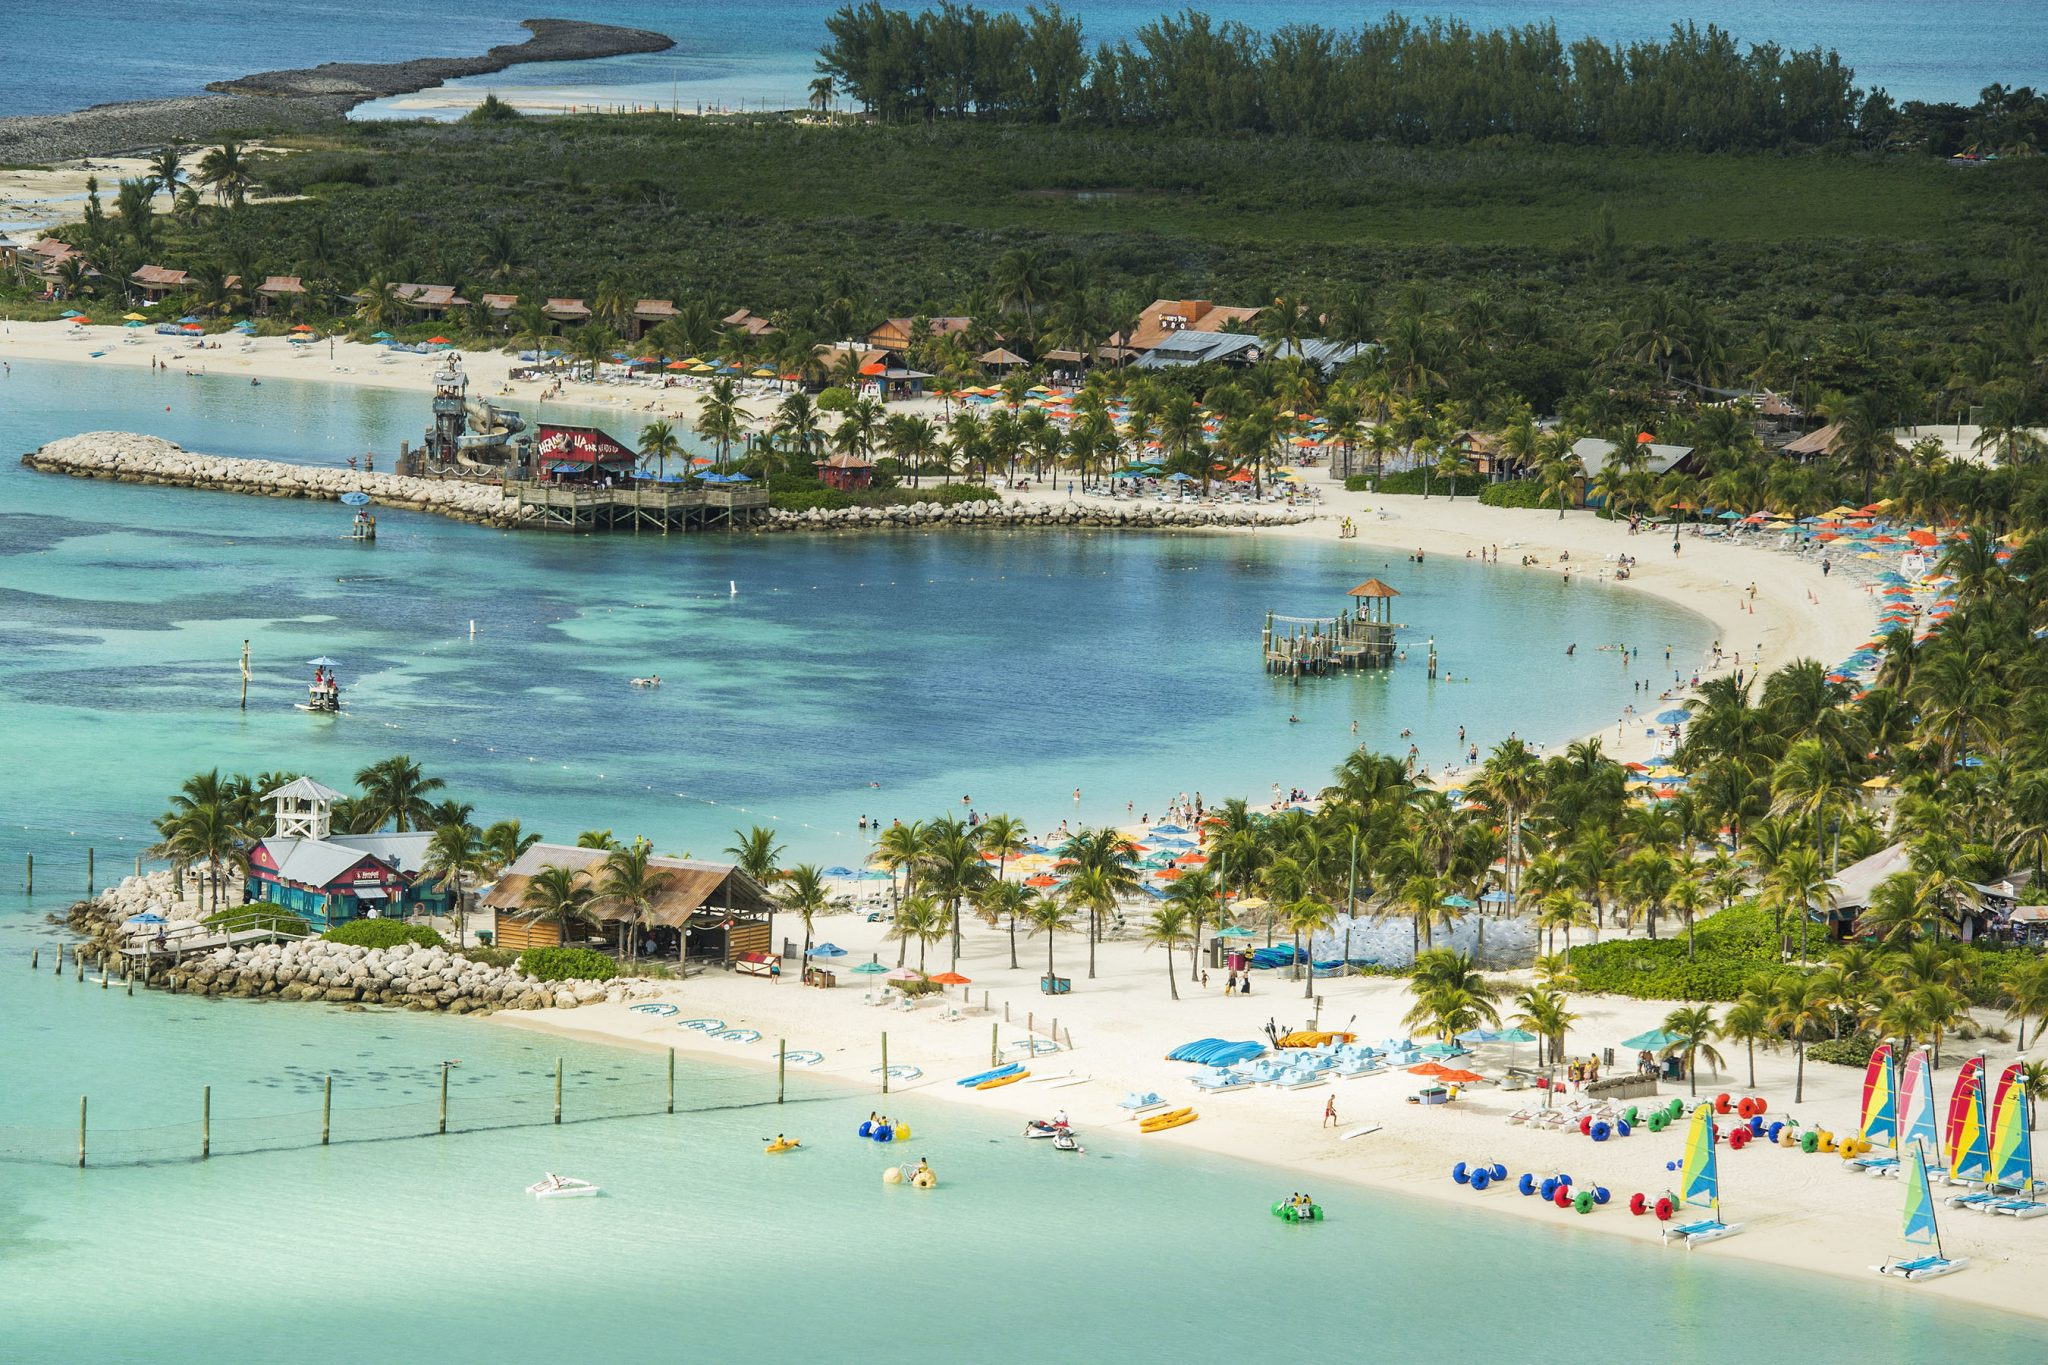 Castaway Cay Activities: a Complete Guide to Beaches and Events featured by top US Disney blogger, Marcie and the Mouse: Castaway Cay is Disney's private island paradise in the tropical waters of the Bahamas, reserved exclusively for Disney Cruise Line guests. In a setting of crystal-clear turquoise waters, powdery white-sand beaches and lush landscapes, the 1,000-acre island offers one-of-a-kind areas and activities for every member of the family. (Matt Stroshane, photographer)